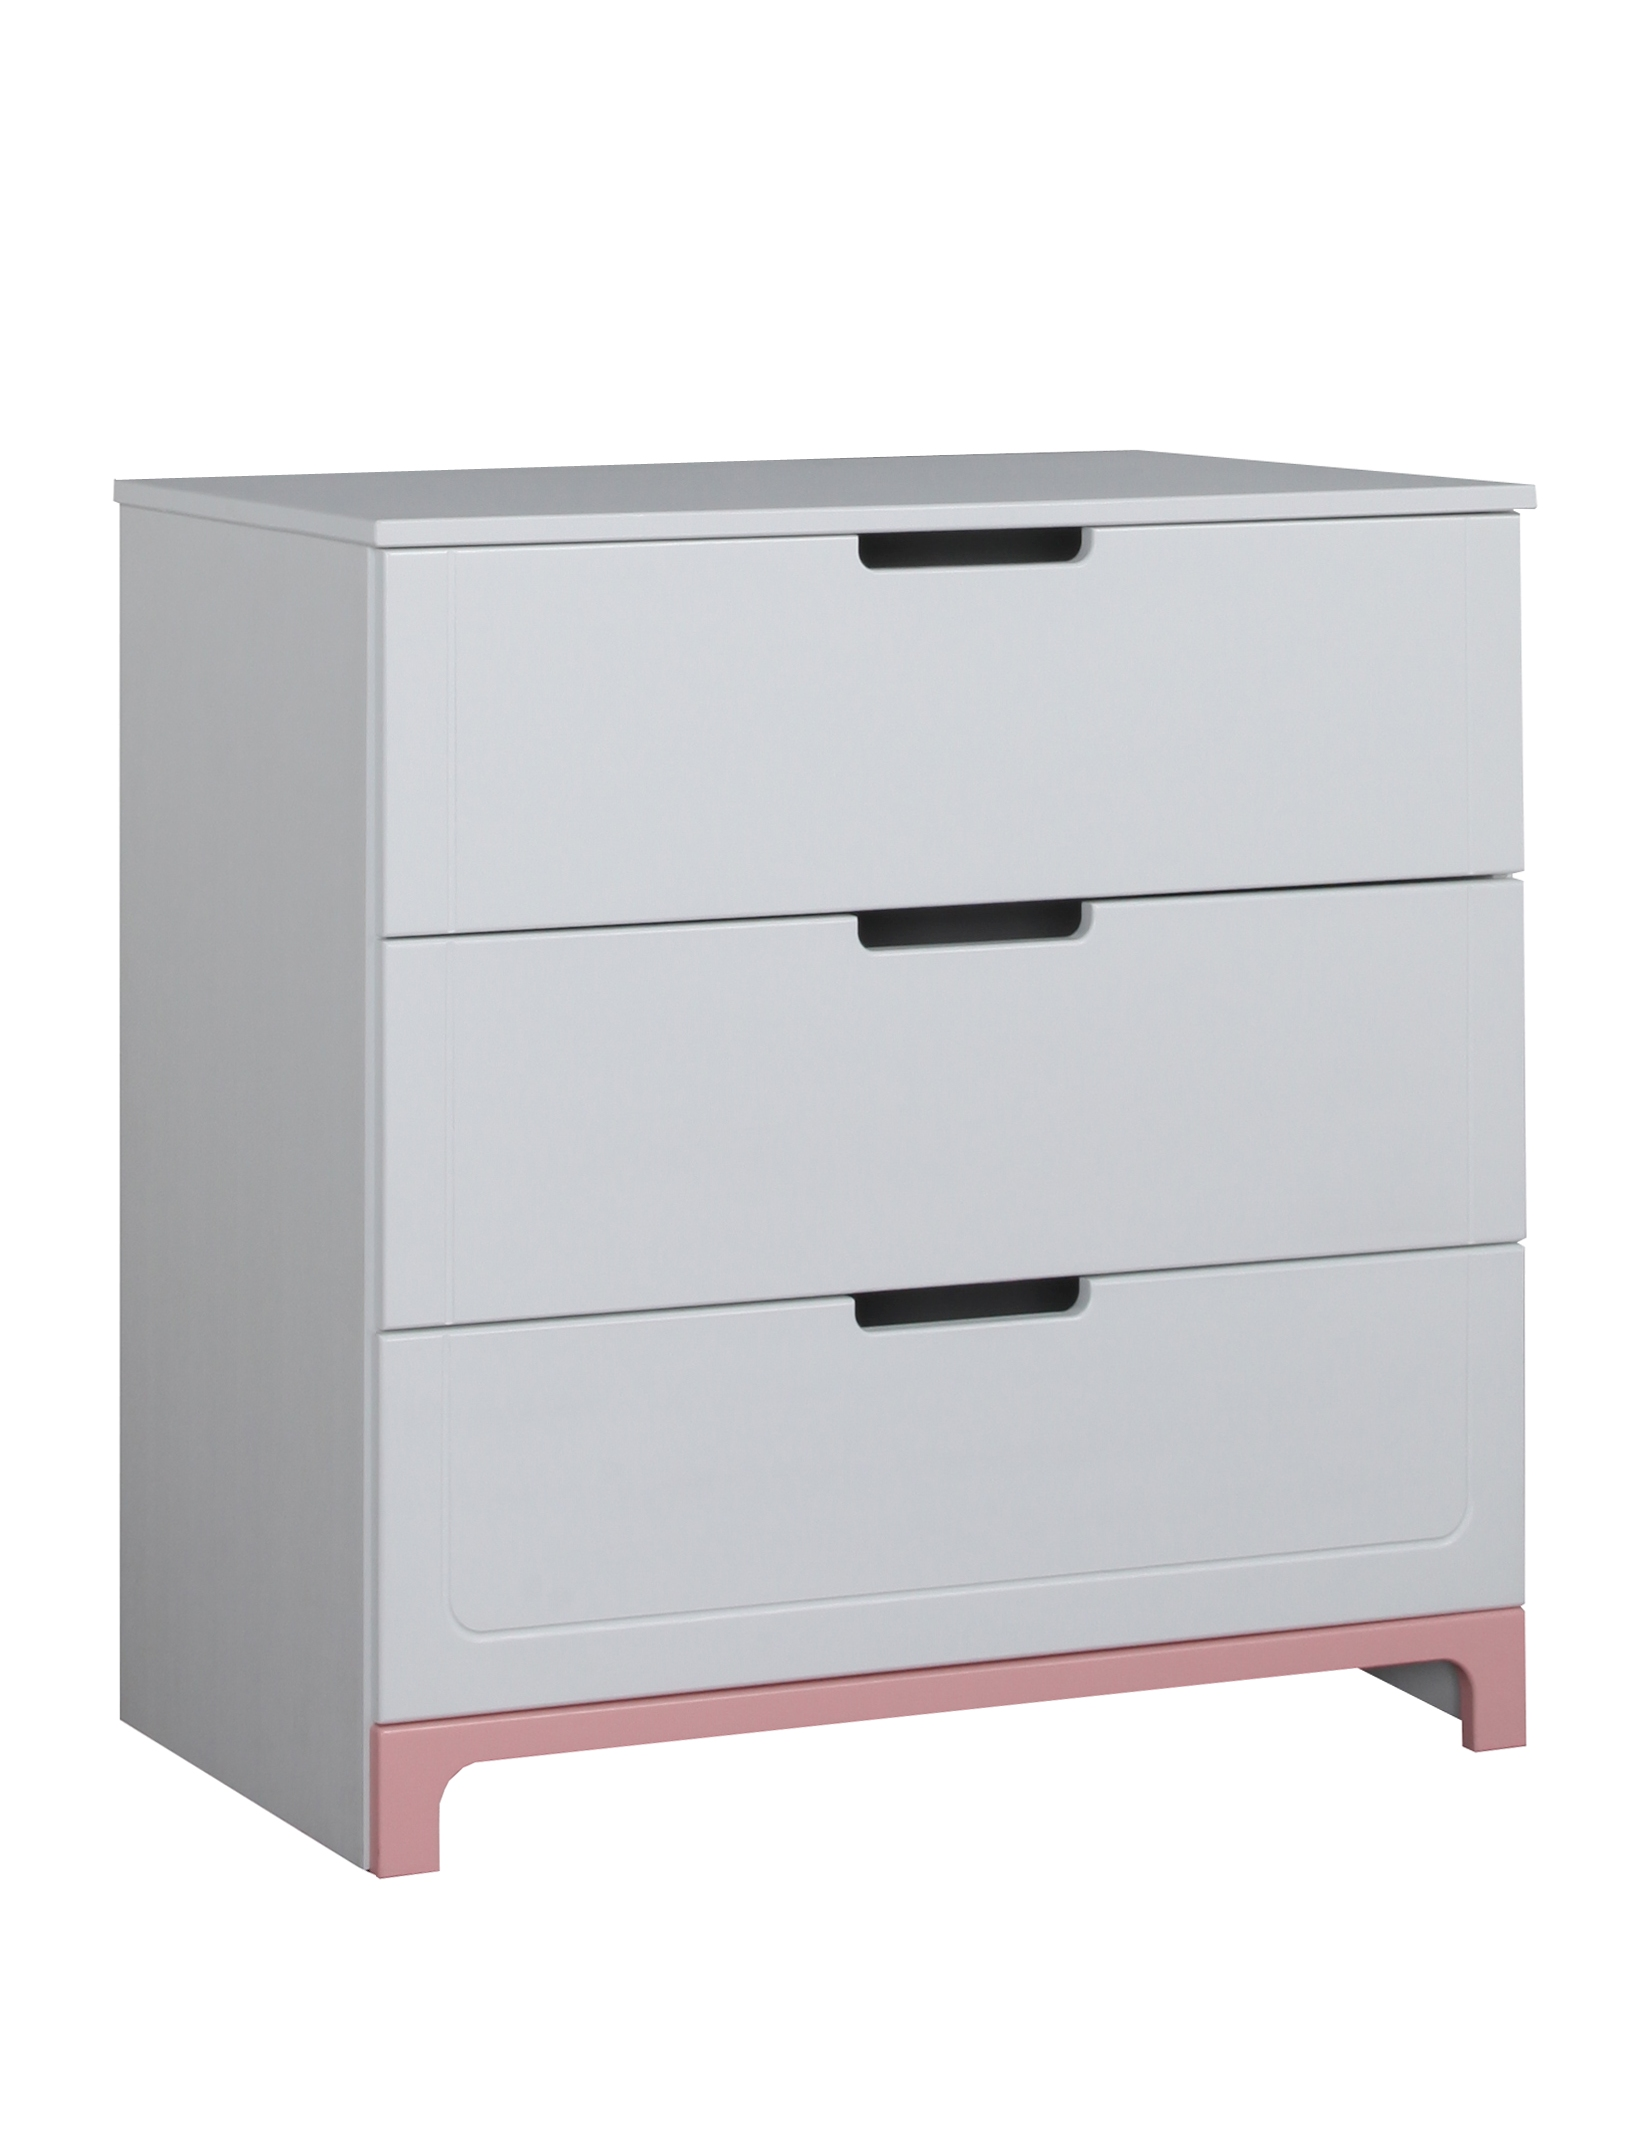 kommode mini 3 schubladen rosa oder grau. Black Bedroom Furniture Sets. Home Design Ideas